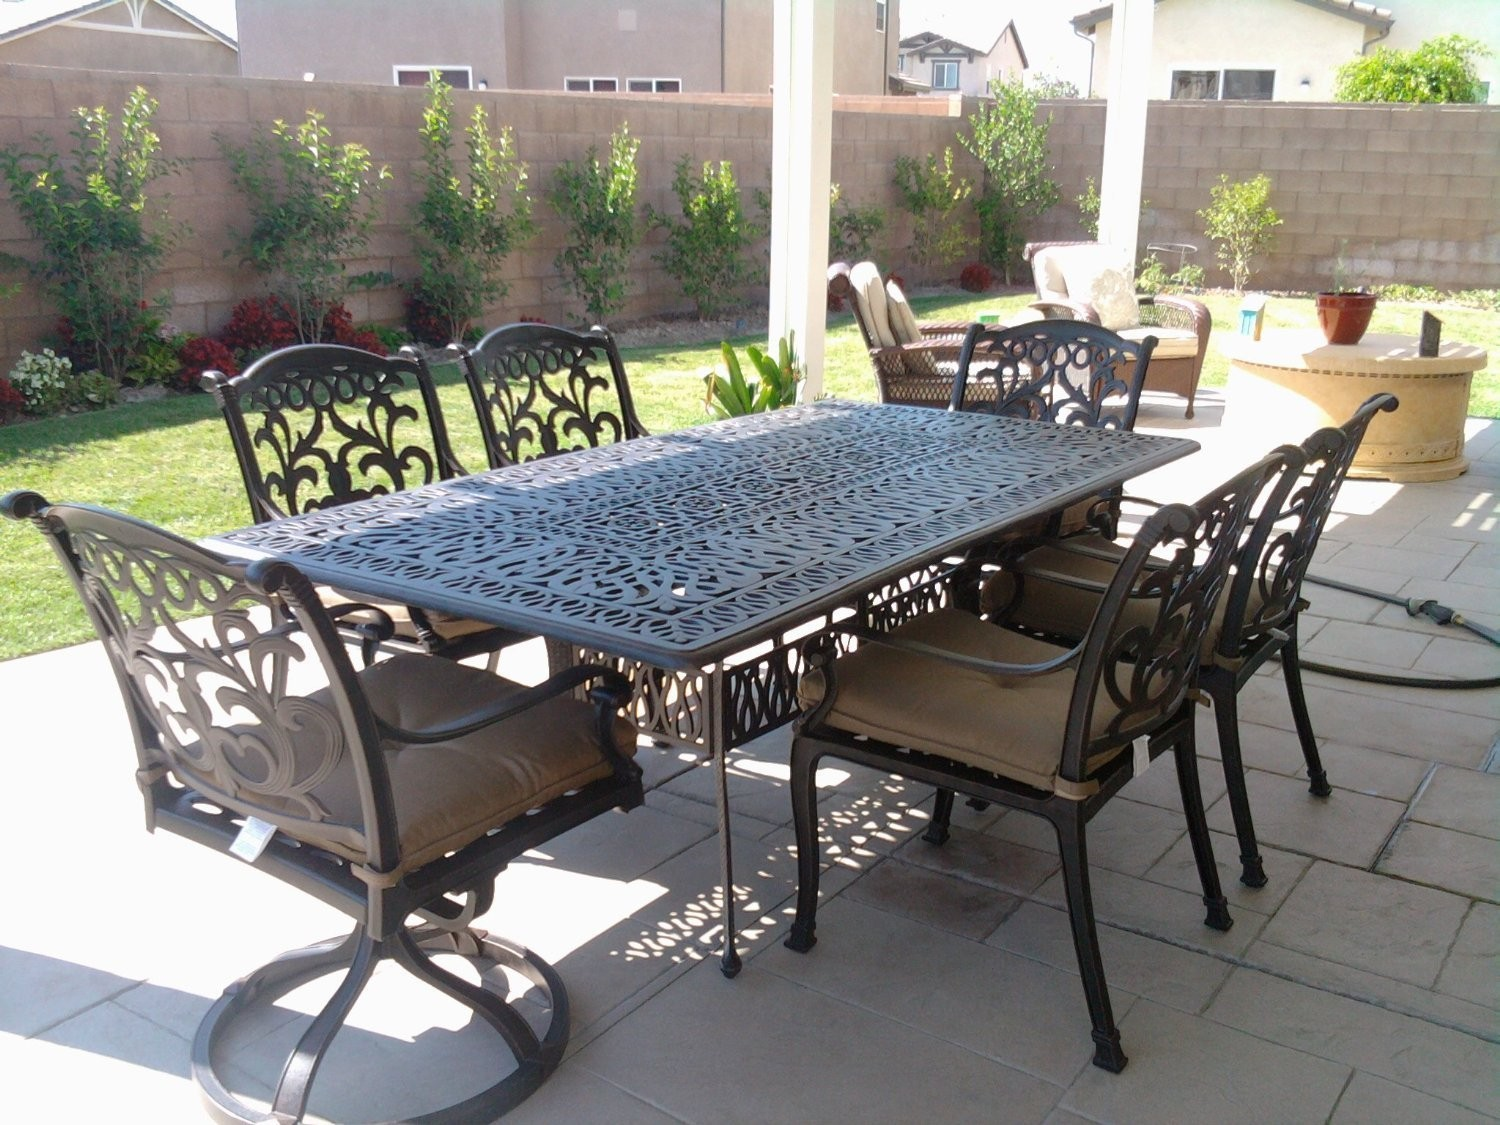 18 Special Features Of Patio Dining Sets Lowes